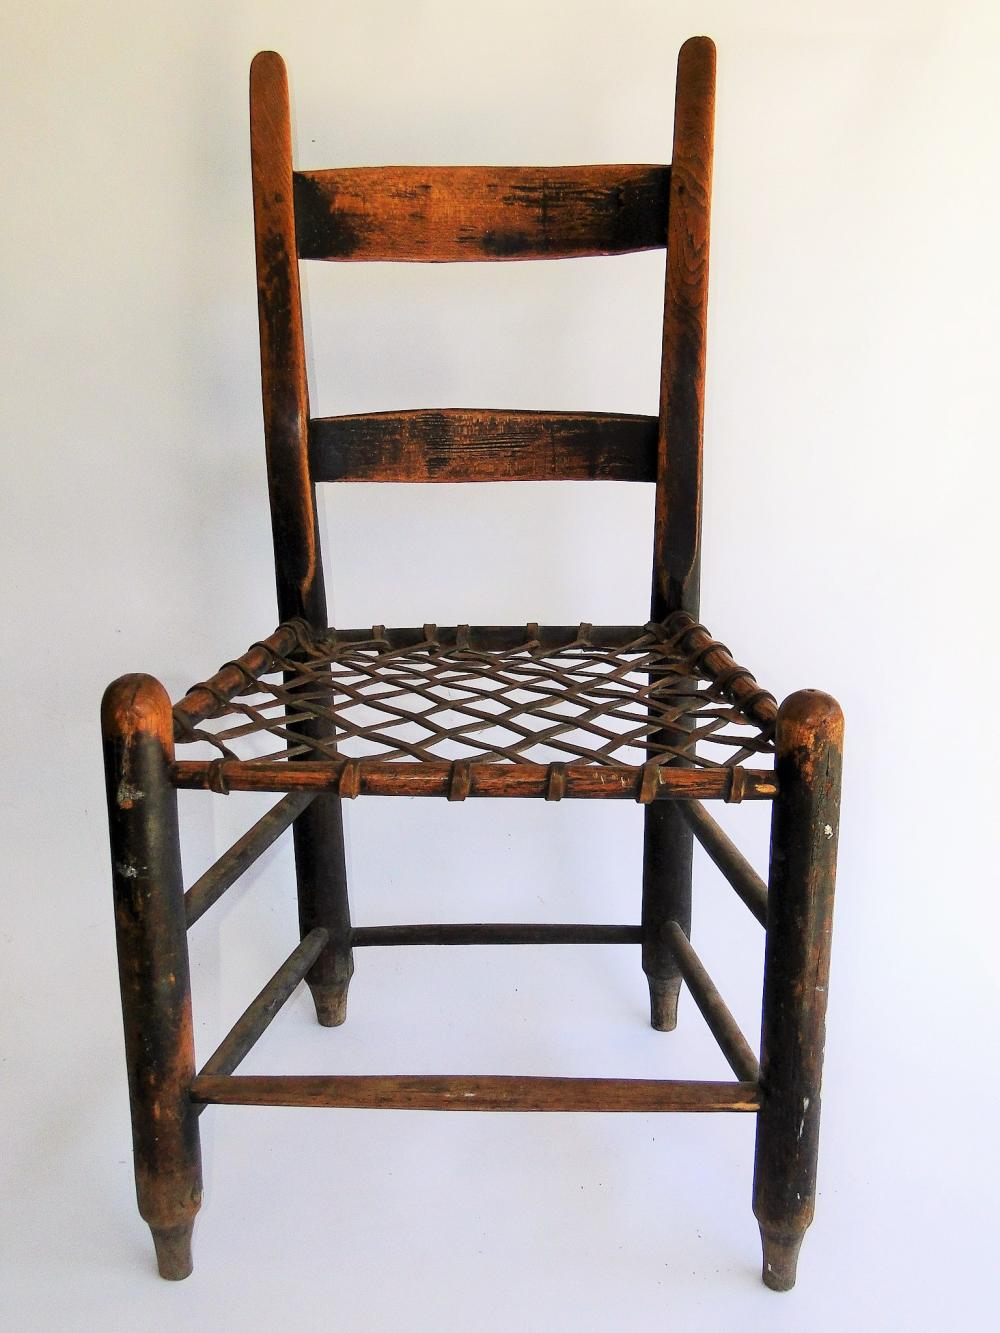 Lot 80I: EARLY CHAIR WITH RAW HIDE SEAT